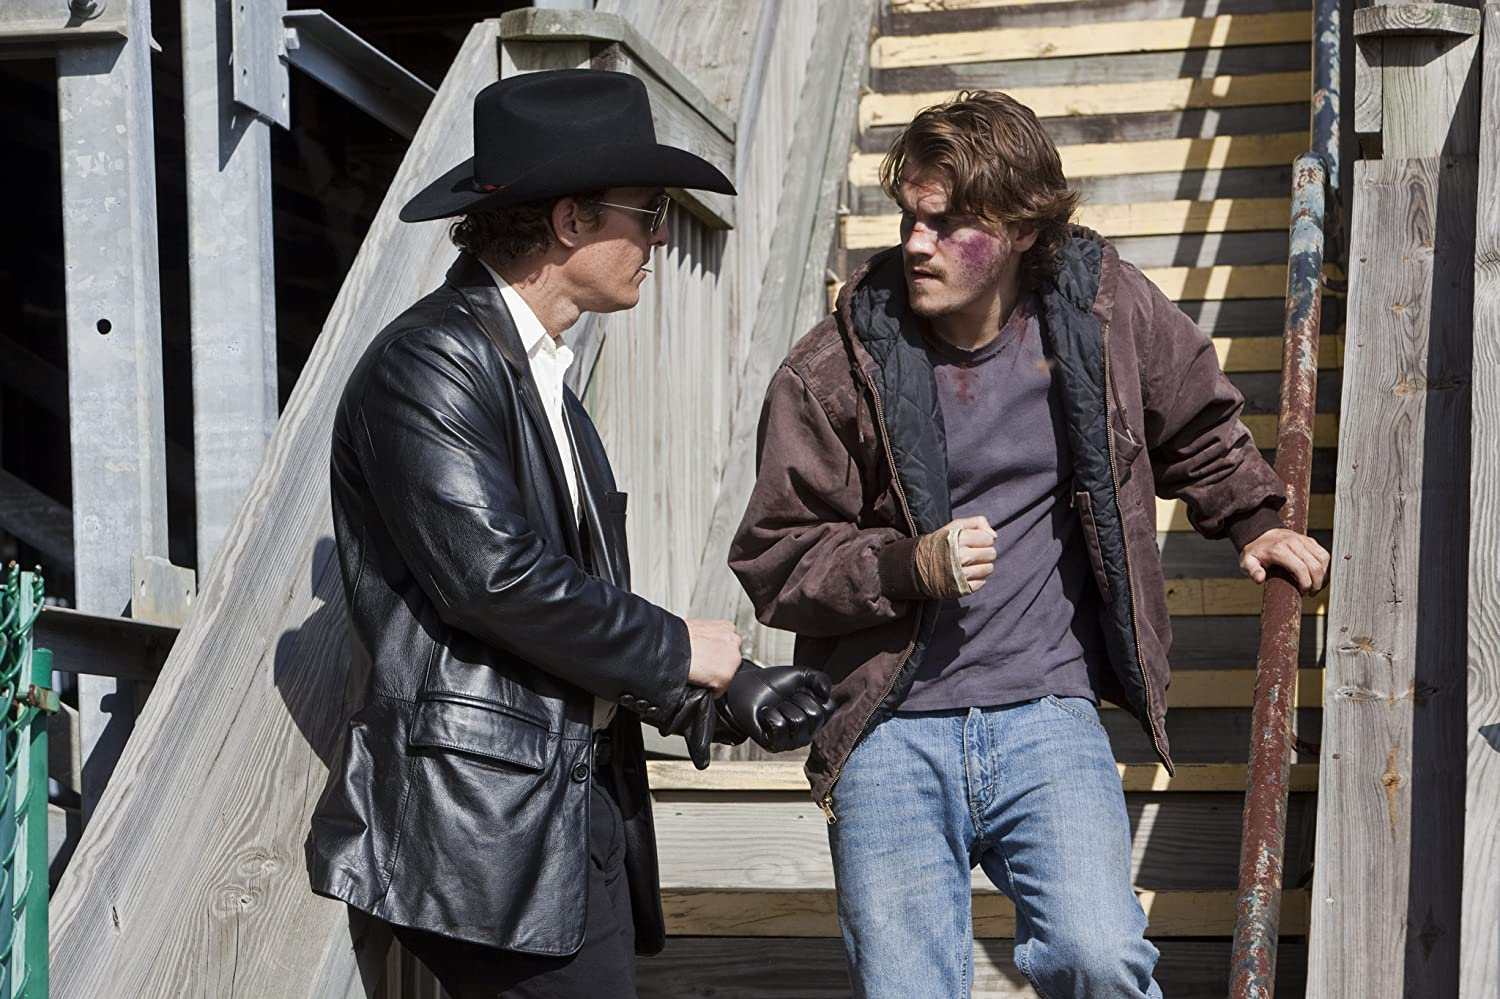 Matthew McConaughey and Emile Hirsch in Killer Joe (2011)